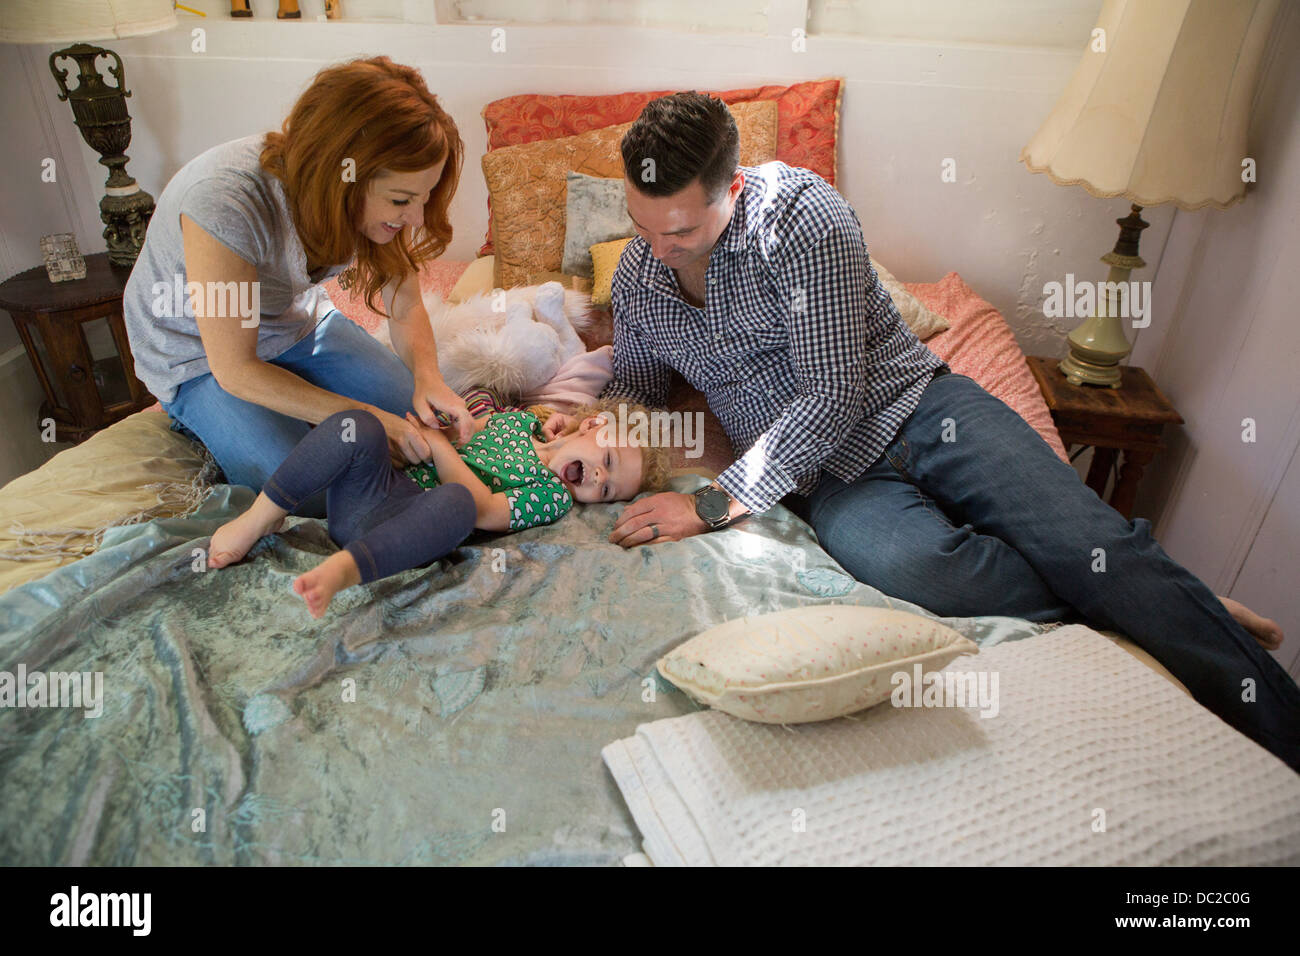 Husband and wife playing with child - Stock Image